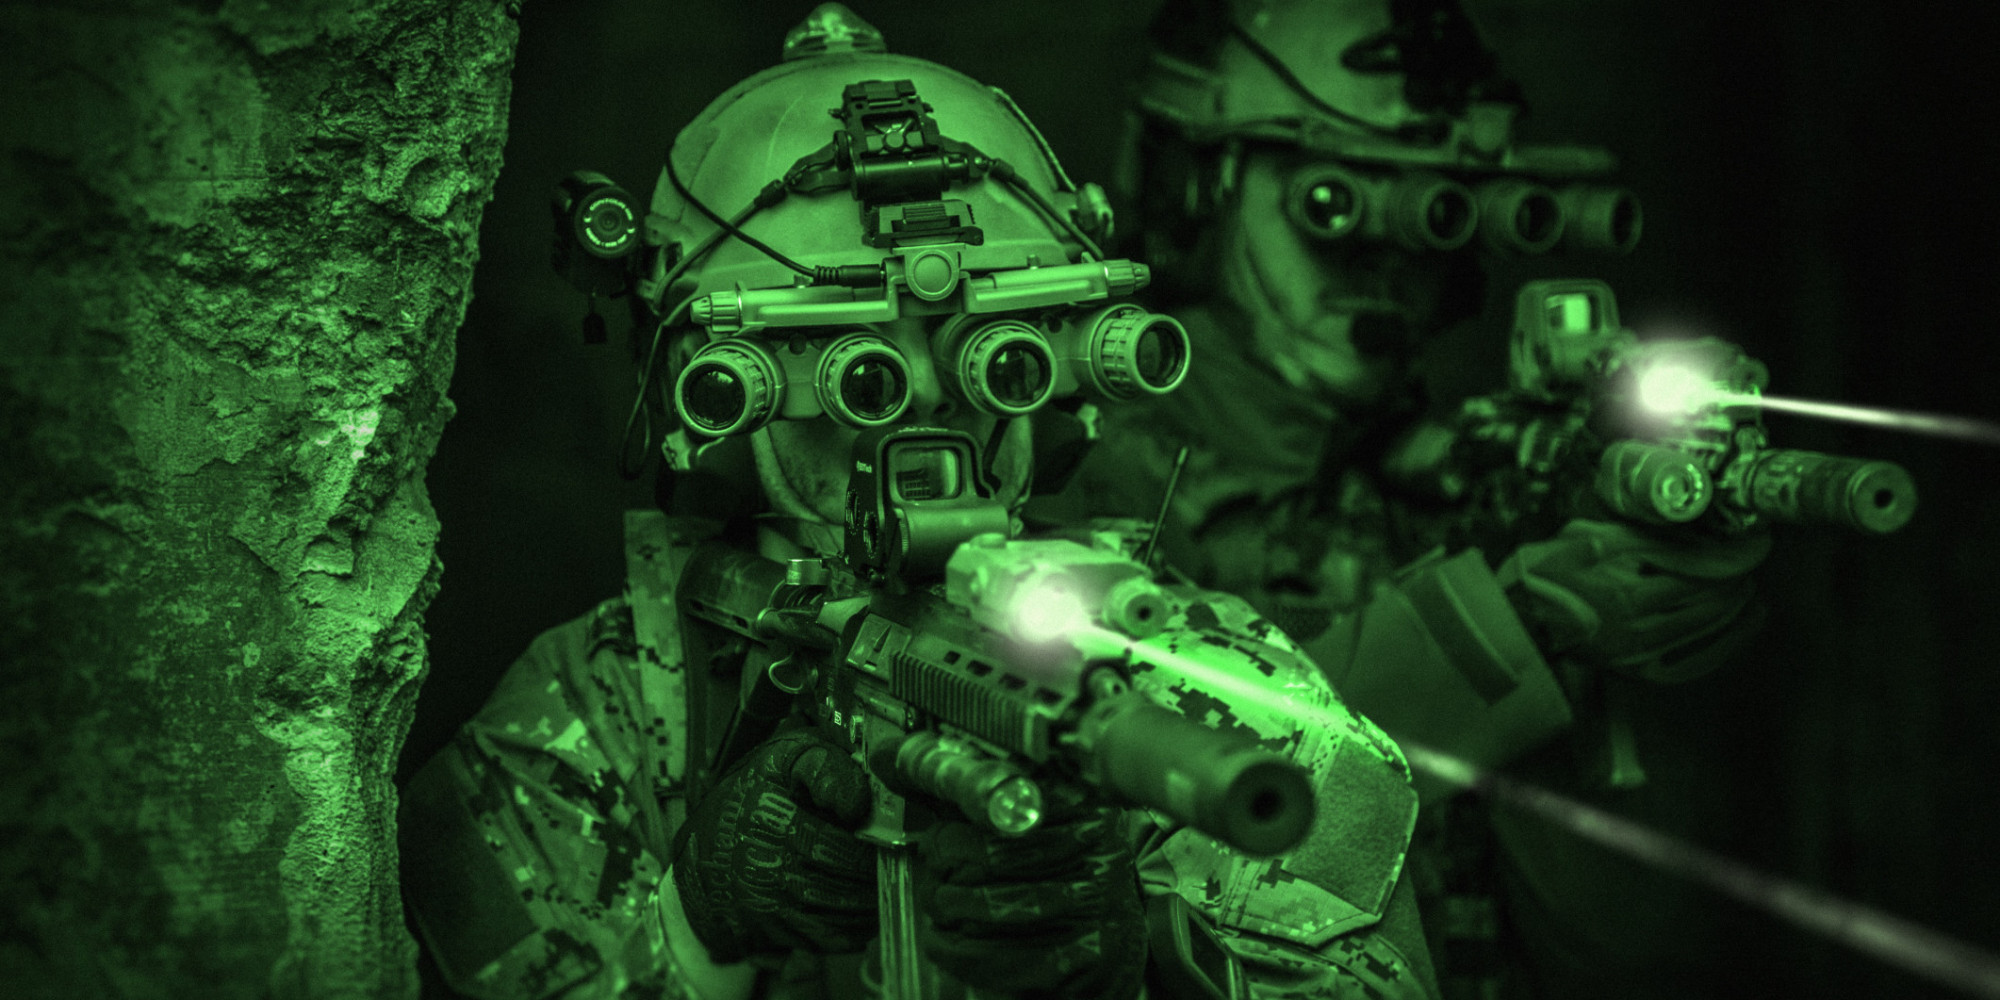 Night-Vision Contact Lenses That Use Infared Technology ...